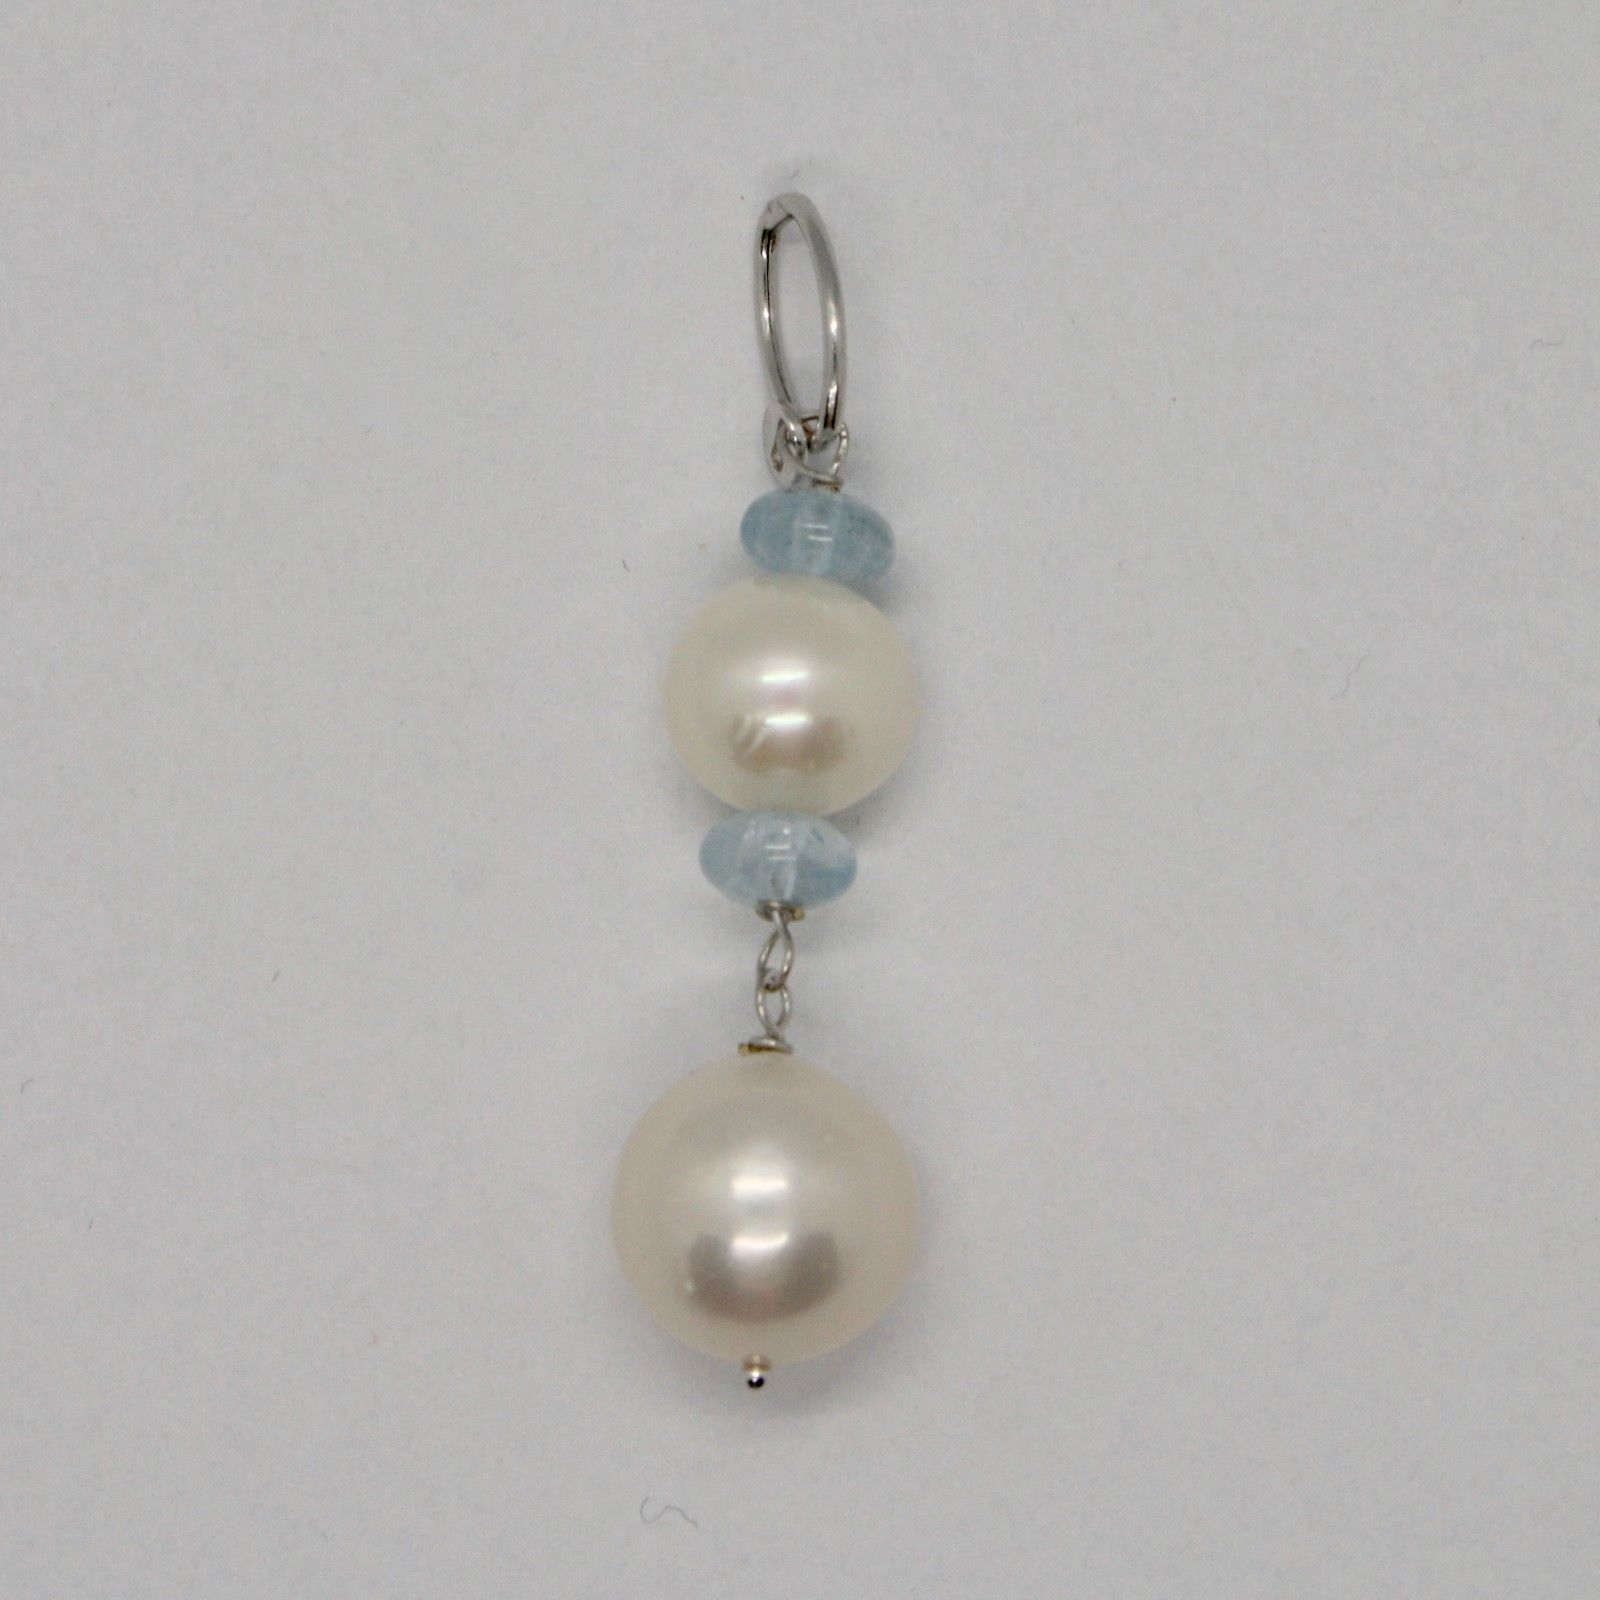 Charm 18k 750 White Gold with white pearls freshwater and Aquamarine